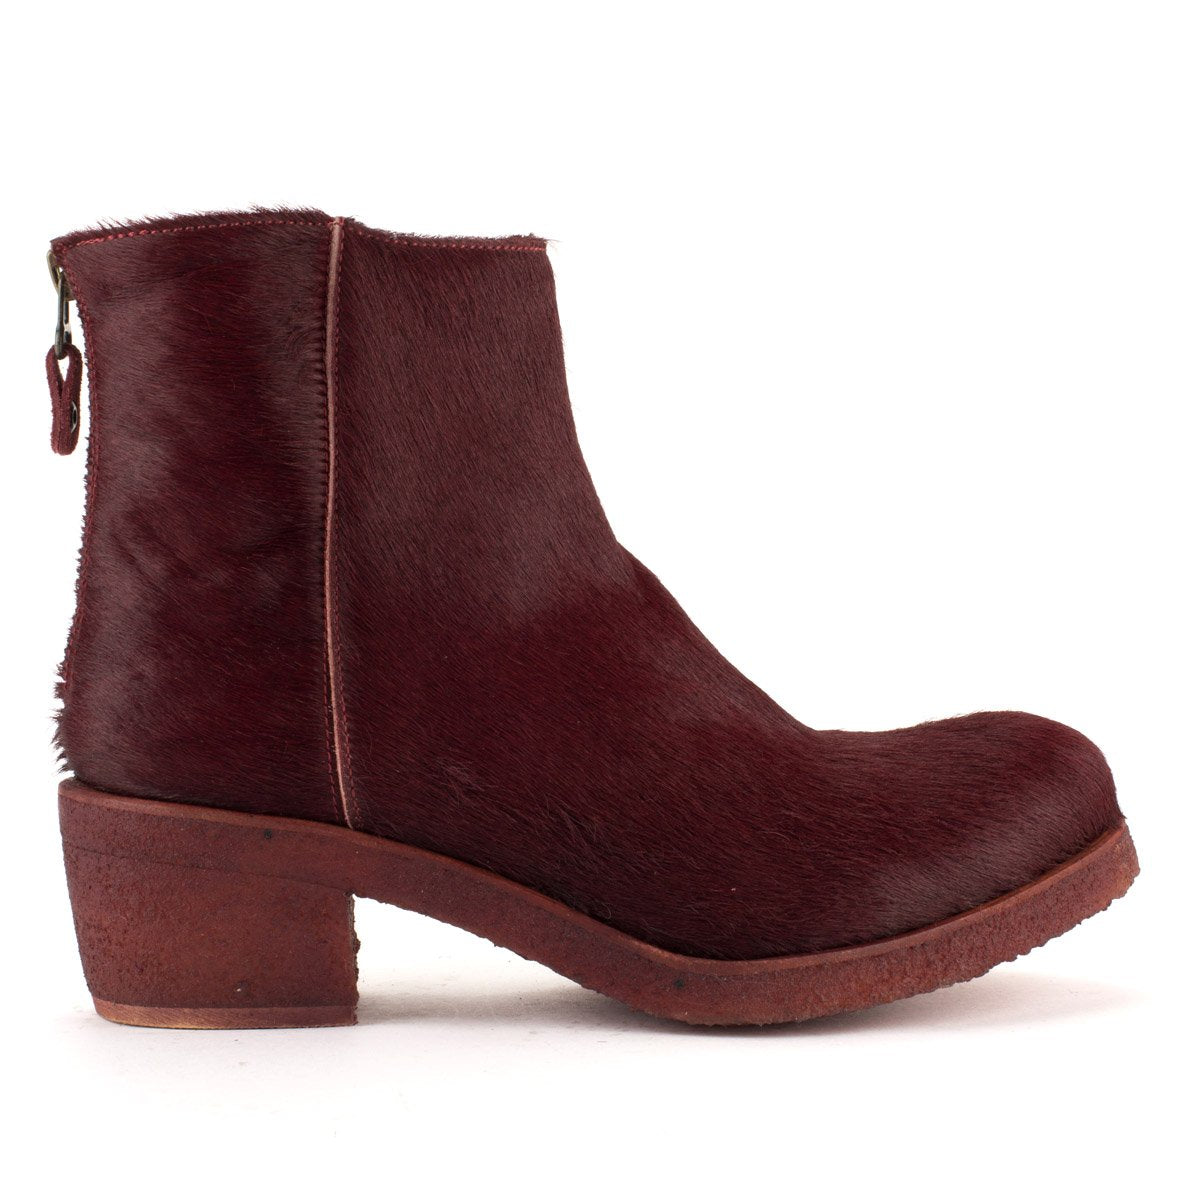 TEXAS 03 PONY TEXTURE BOOTS – Bordeaux